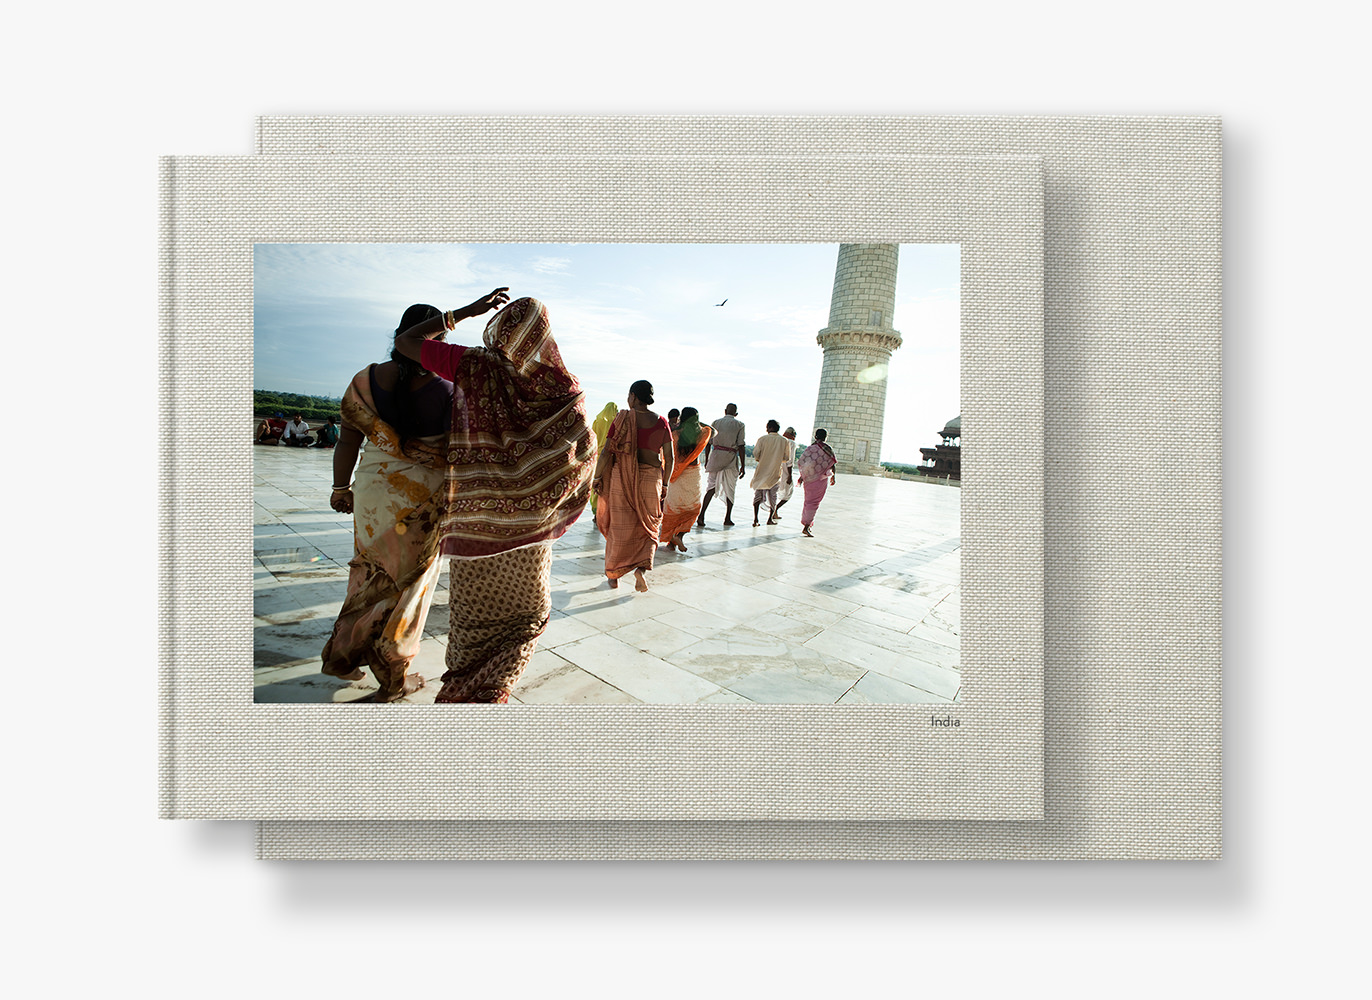 Presentation box and landscape photo book with cover image of people in India